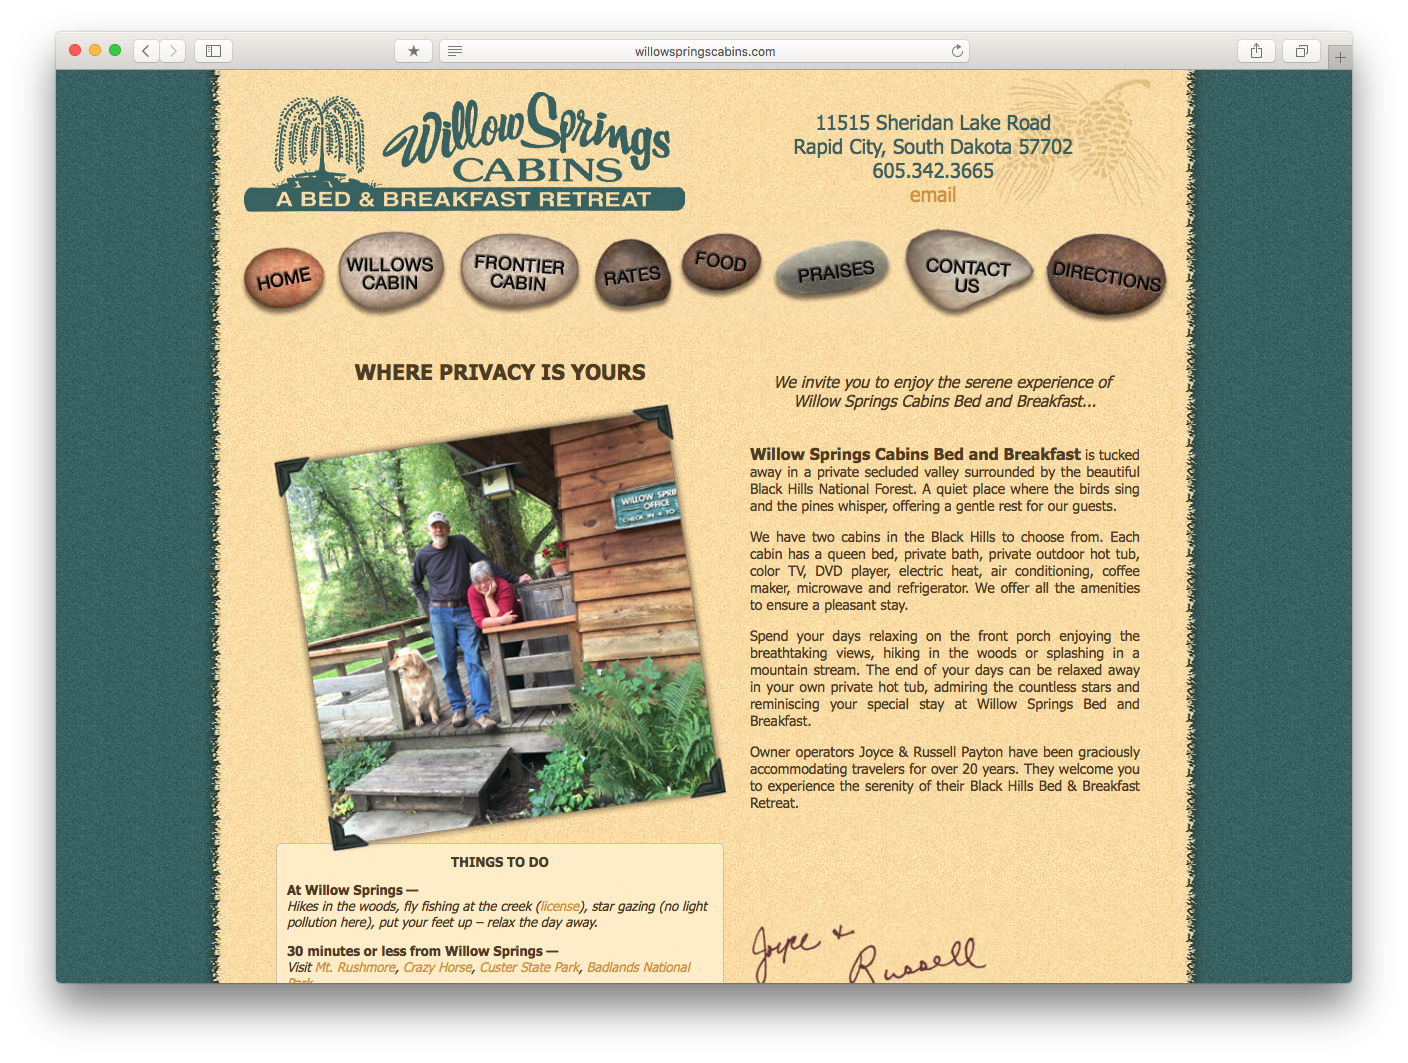 Willow Springs Cabins